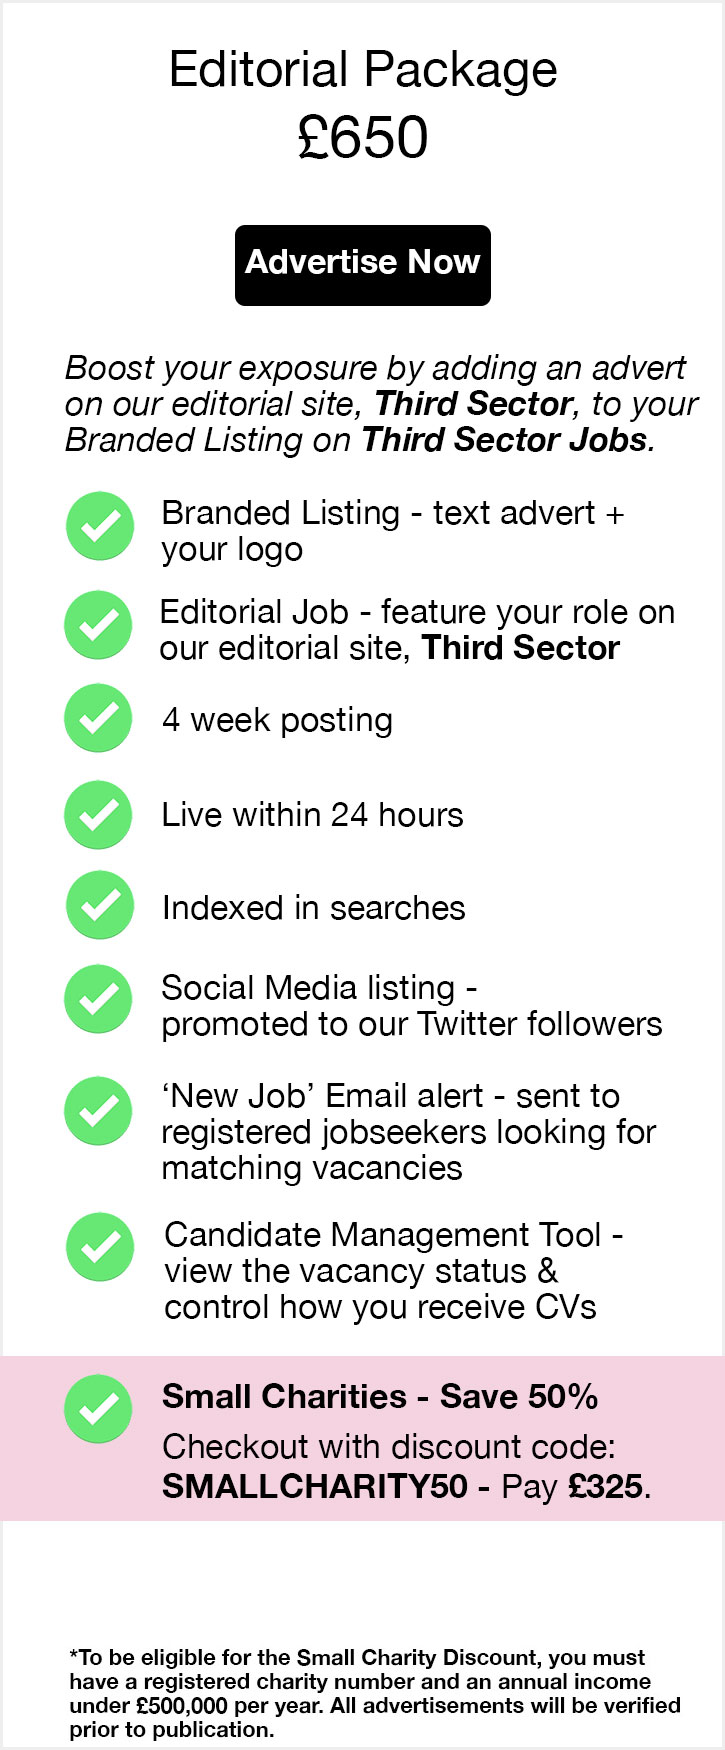 Premium Editorial Package. £800. Advertise Now. Advertise your role on Third Sector Jobs and Third Sector. This solution can boost applications by up to 77%. Text advert + your logo. Live within 24 hours. 4 week listing on Third Sector Jobs + 1 week feature on relevant pages of Third Sector. Reach up to 178,000 charity professionals. Social Media listing - promoted to our followers. Candidate Management Tool - view the status of your posting and control how you receive CVs. Candidate Email Newsletter - feature in our weekly bulletin to 98,000 subscribers. Premium Job highlight - improve your search presence. Premium Search result - have your role viewed first when candidates search using matching criteria.